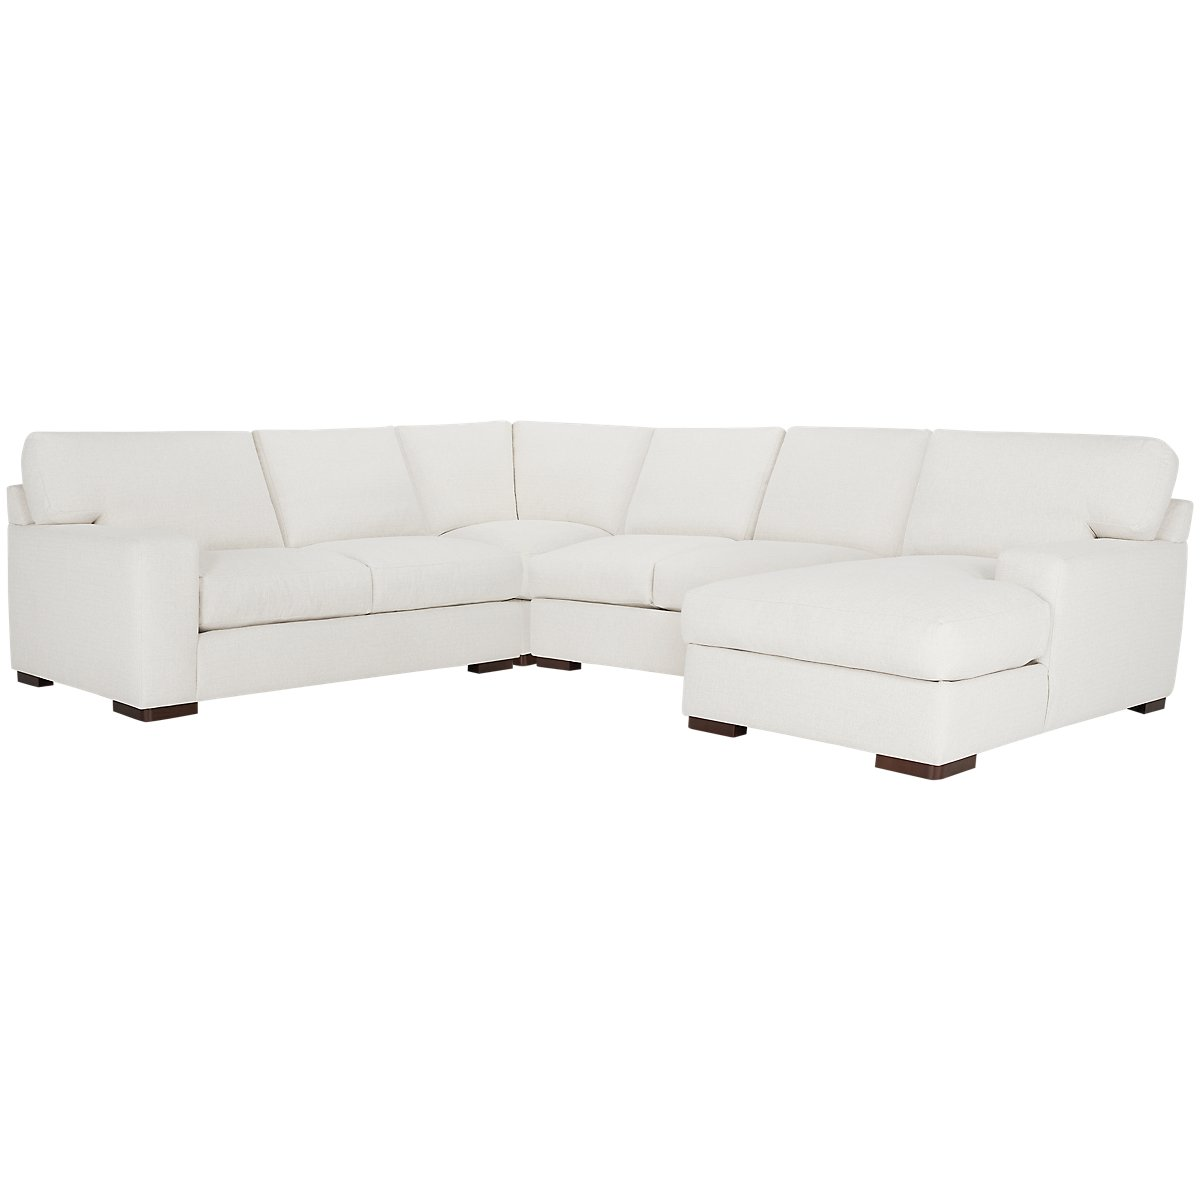 Veronica White Fabric Medium Right Chaise Sectional